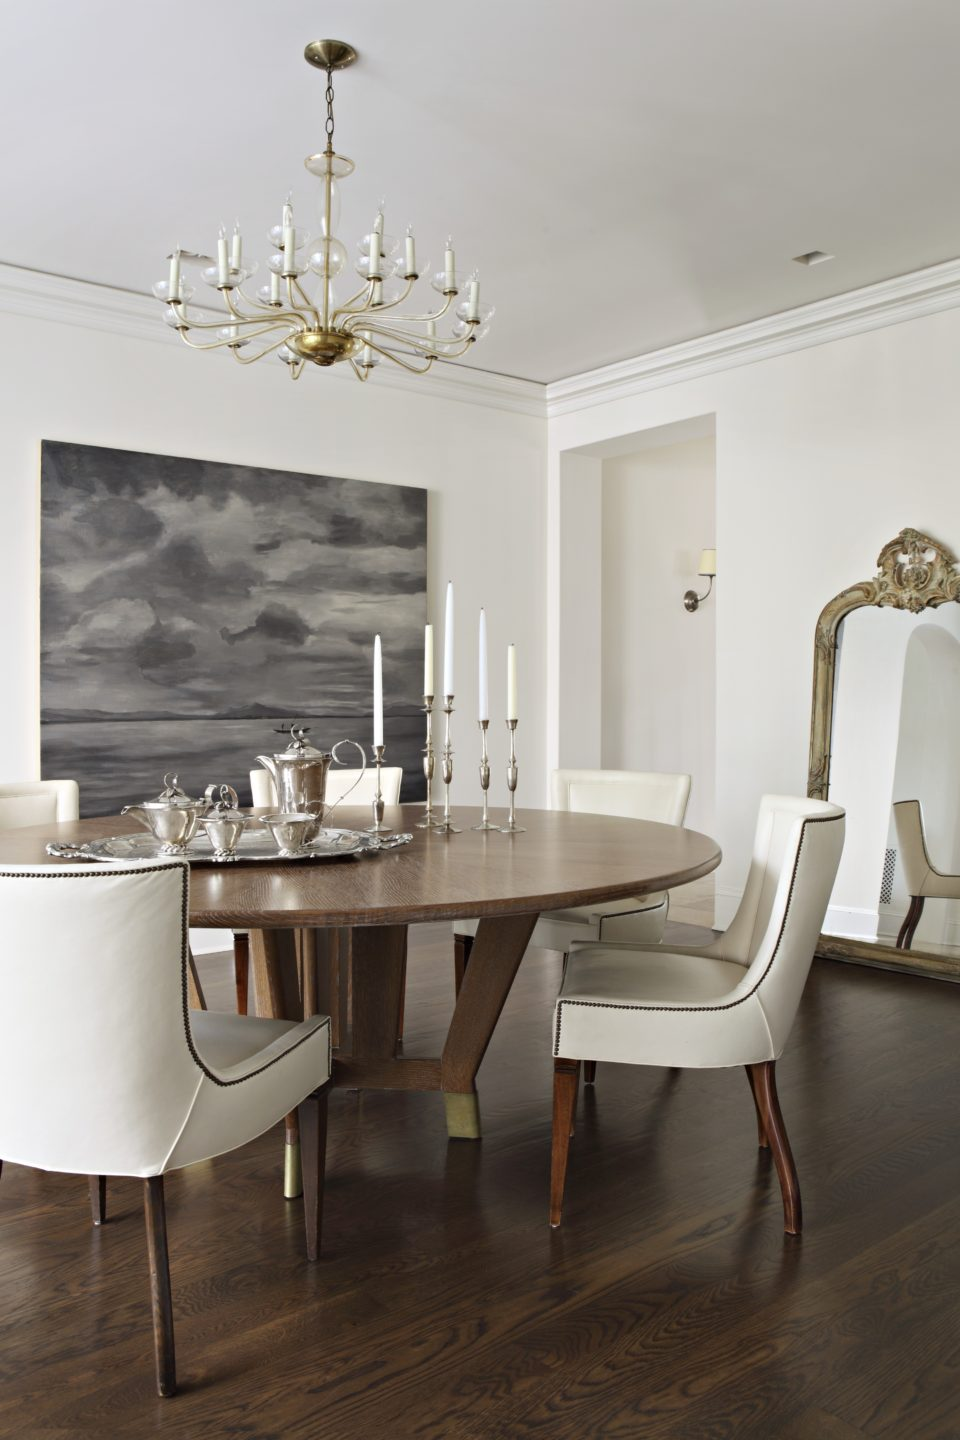 Studio_William_Hefner_products_verona_chair_DR_dining_room